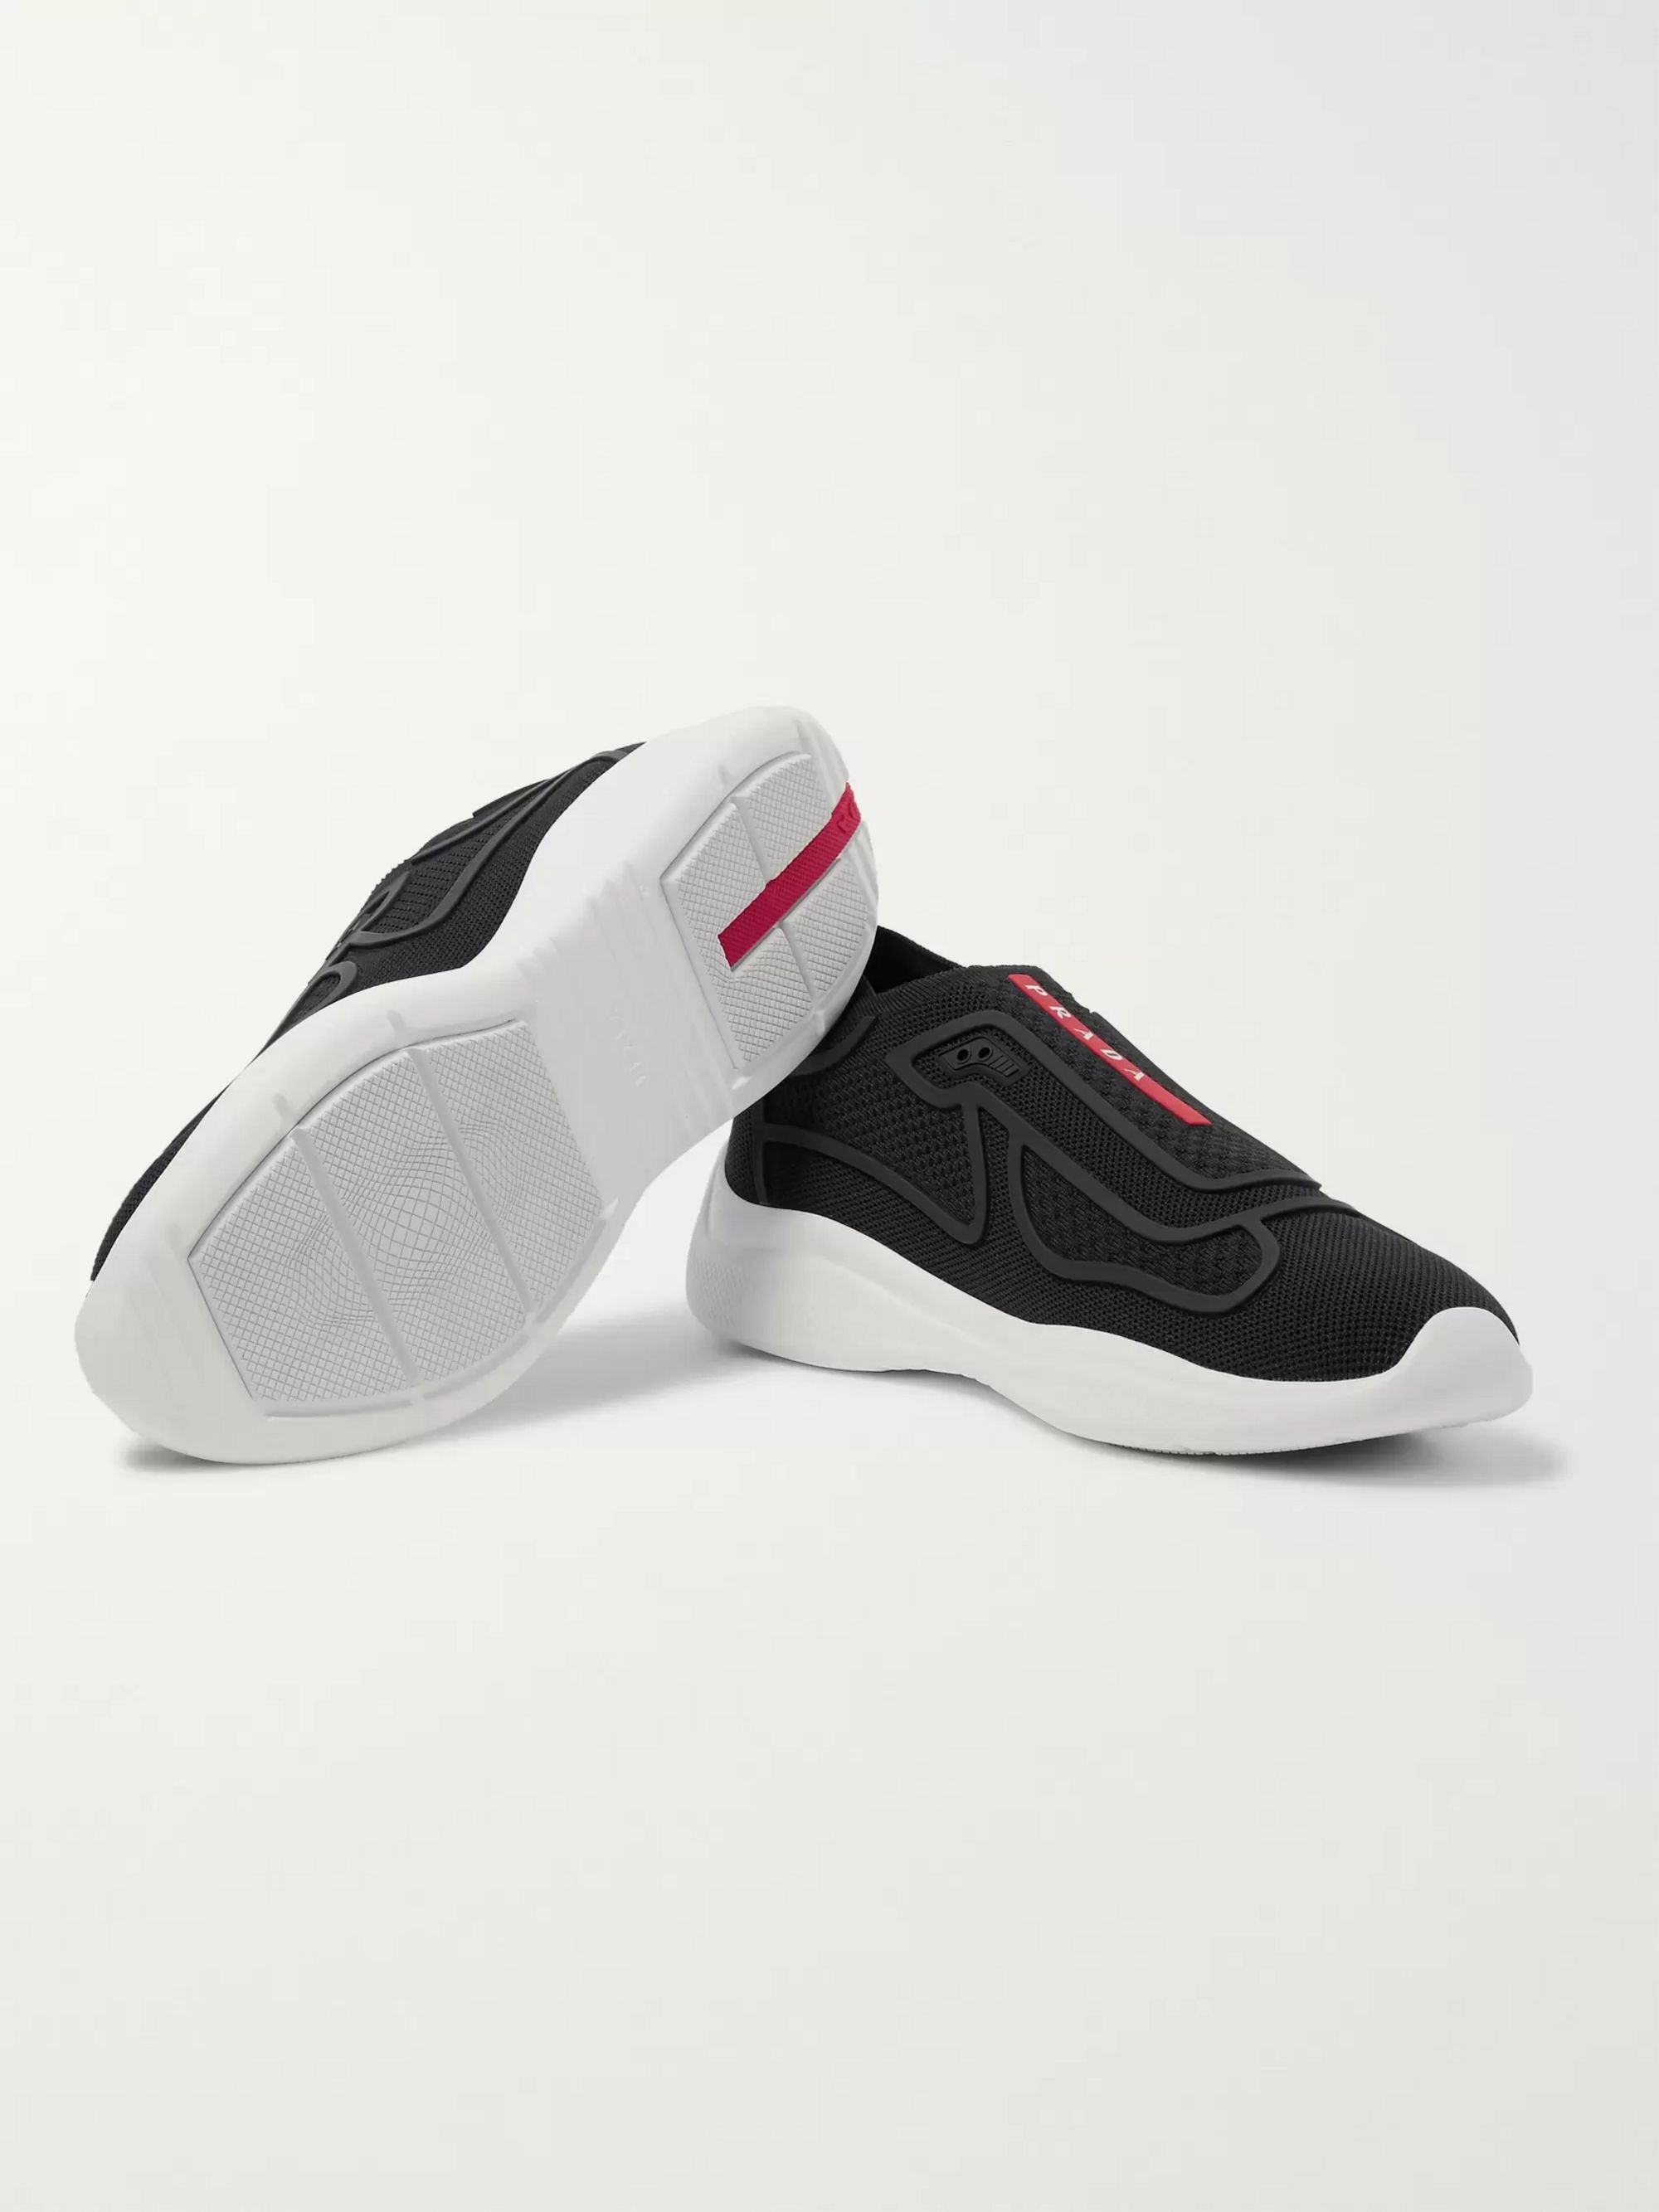 Prada America's Cup Rubber-Trimmed Mesh Slip-On Sneakers